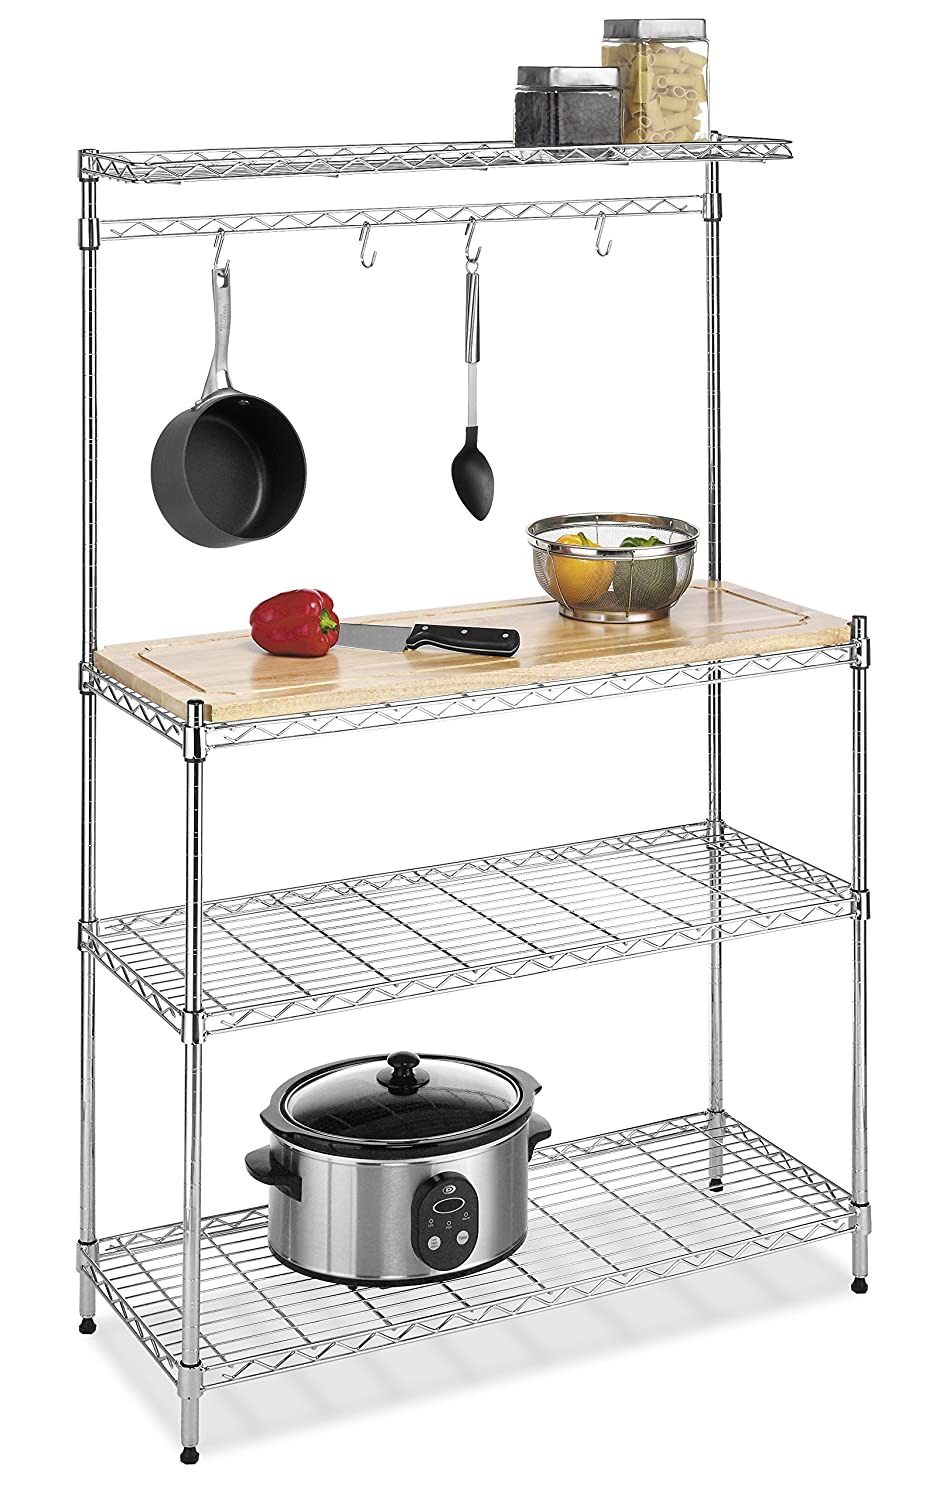 Steel Shelf For Kitchen Amazoncom Whitmor Supreme Kitchen Bakers Rack Wood Chrome